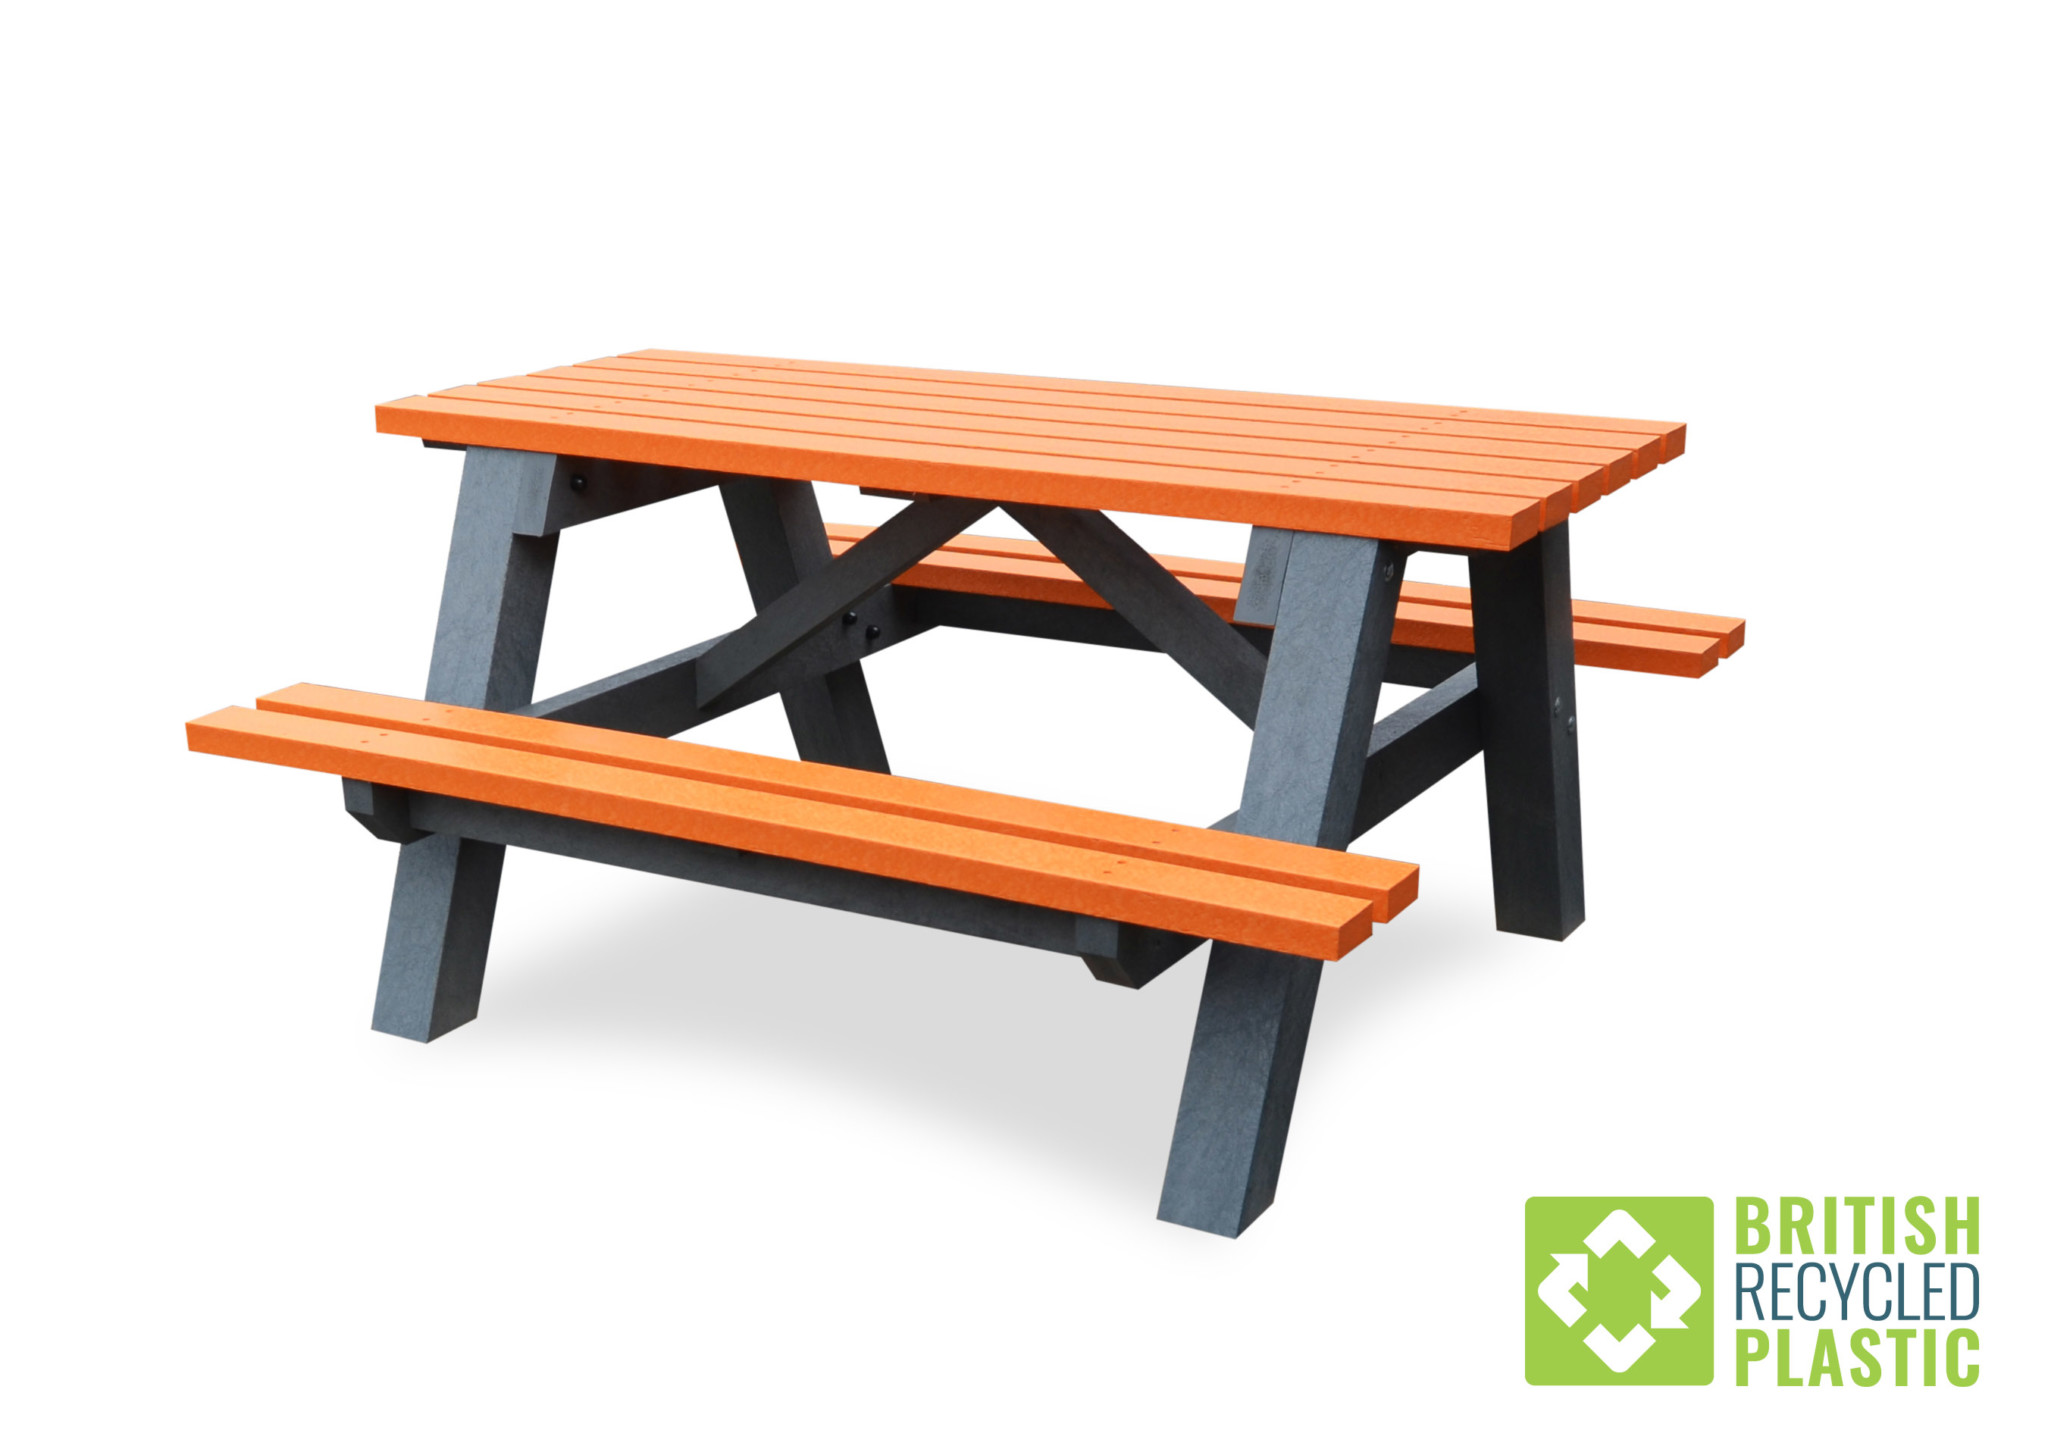 Denholme picnic table with orange slats